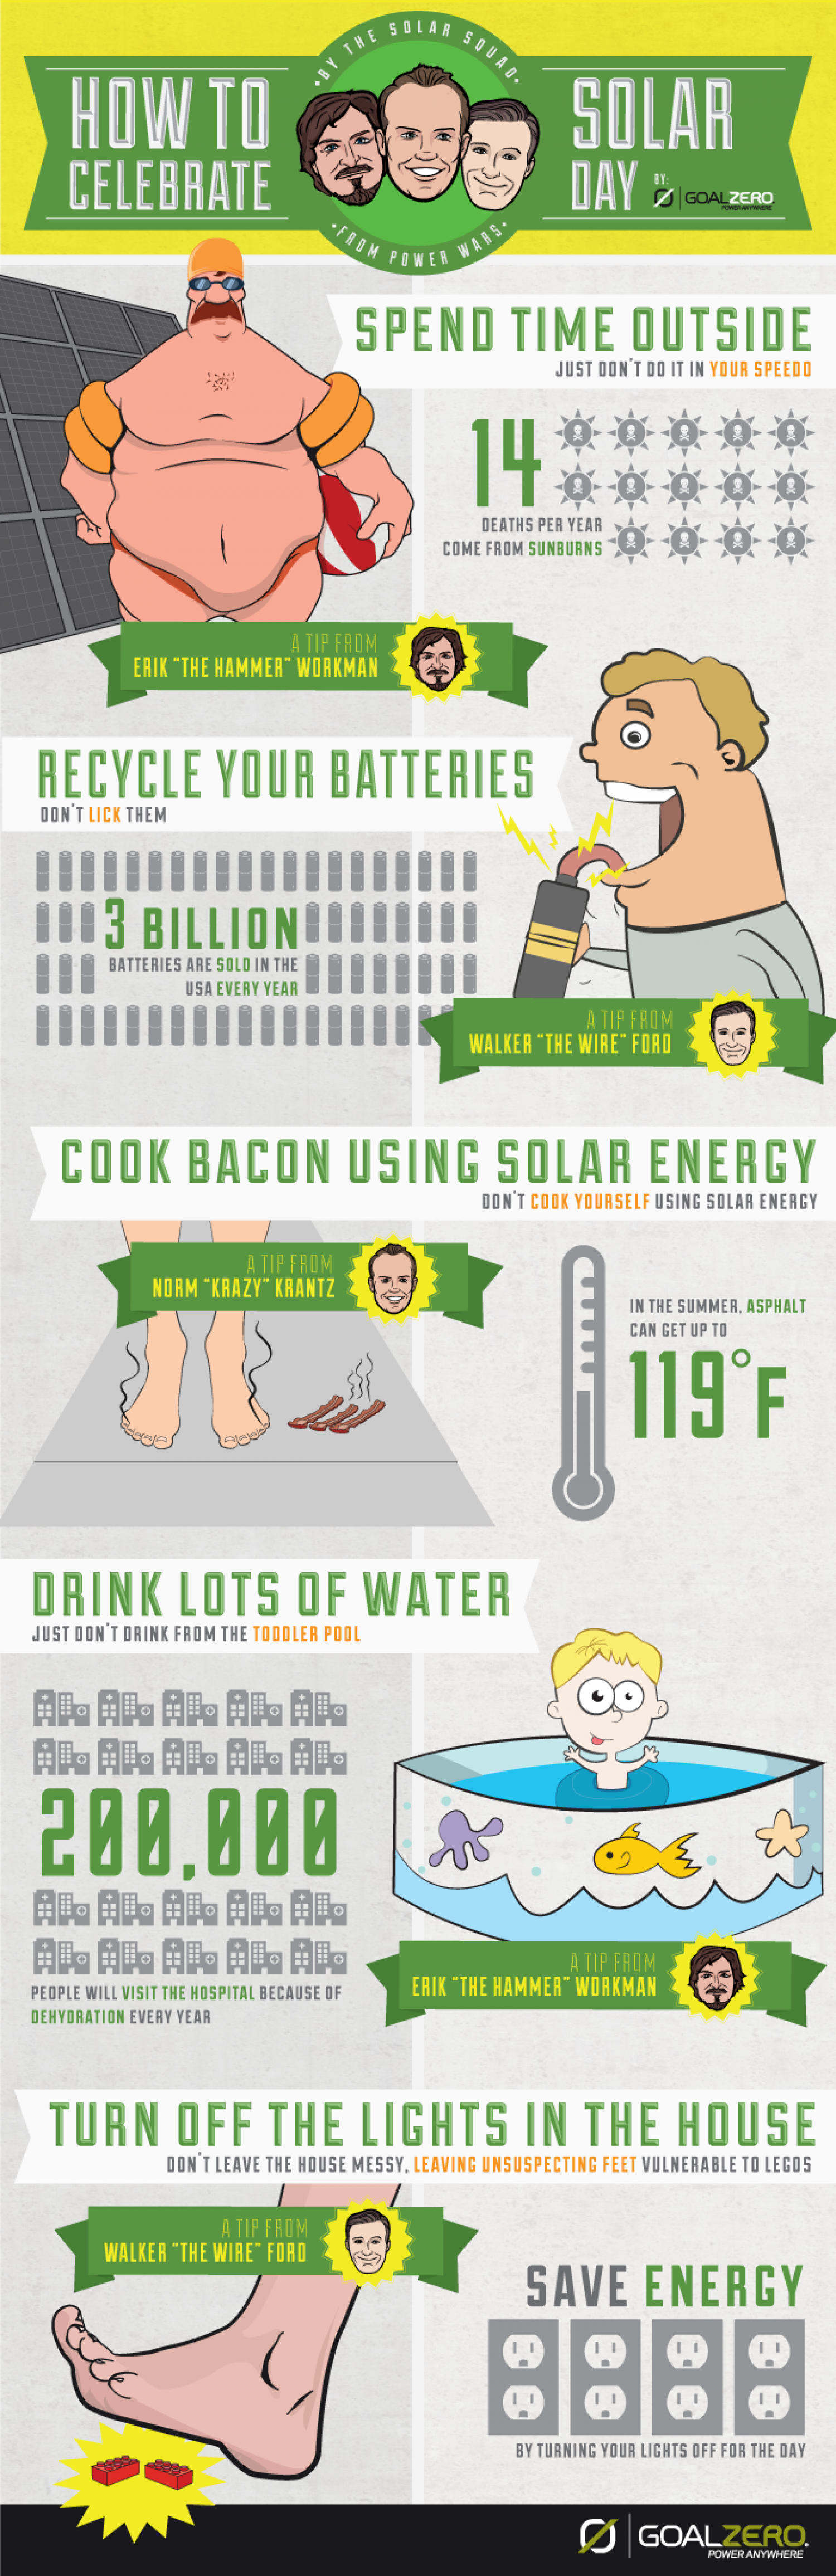 How to Celebrate Solar Day Infographic